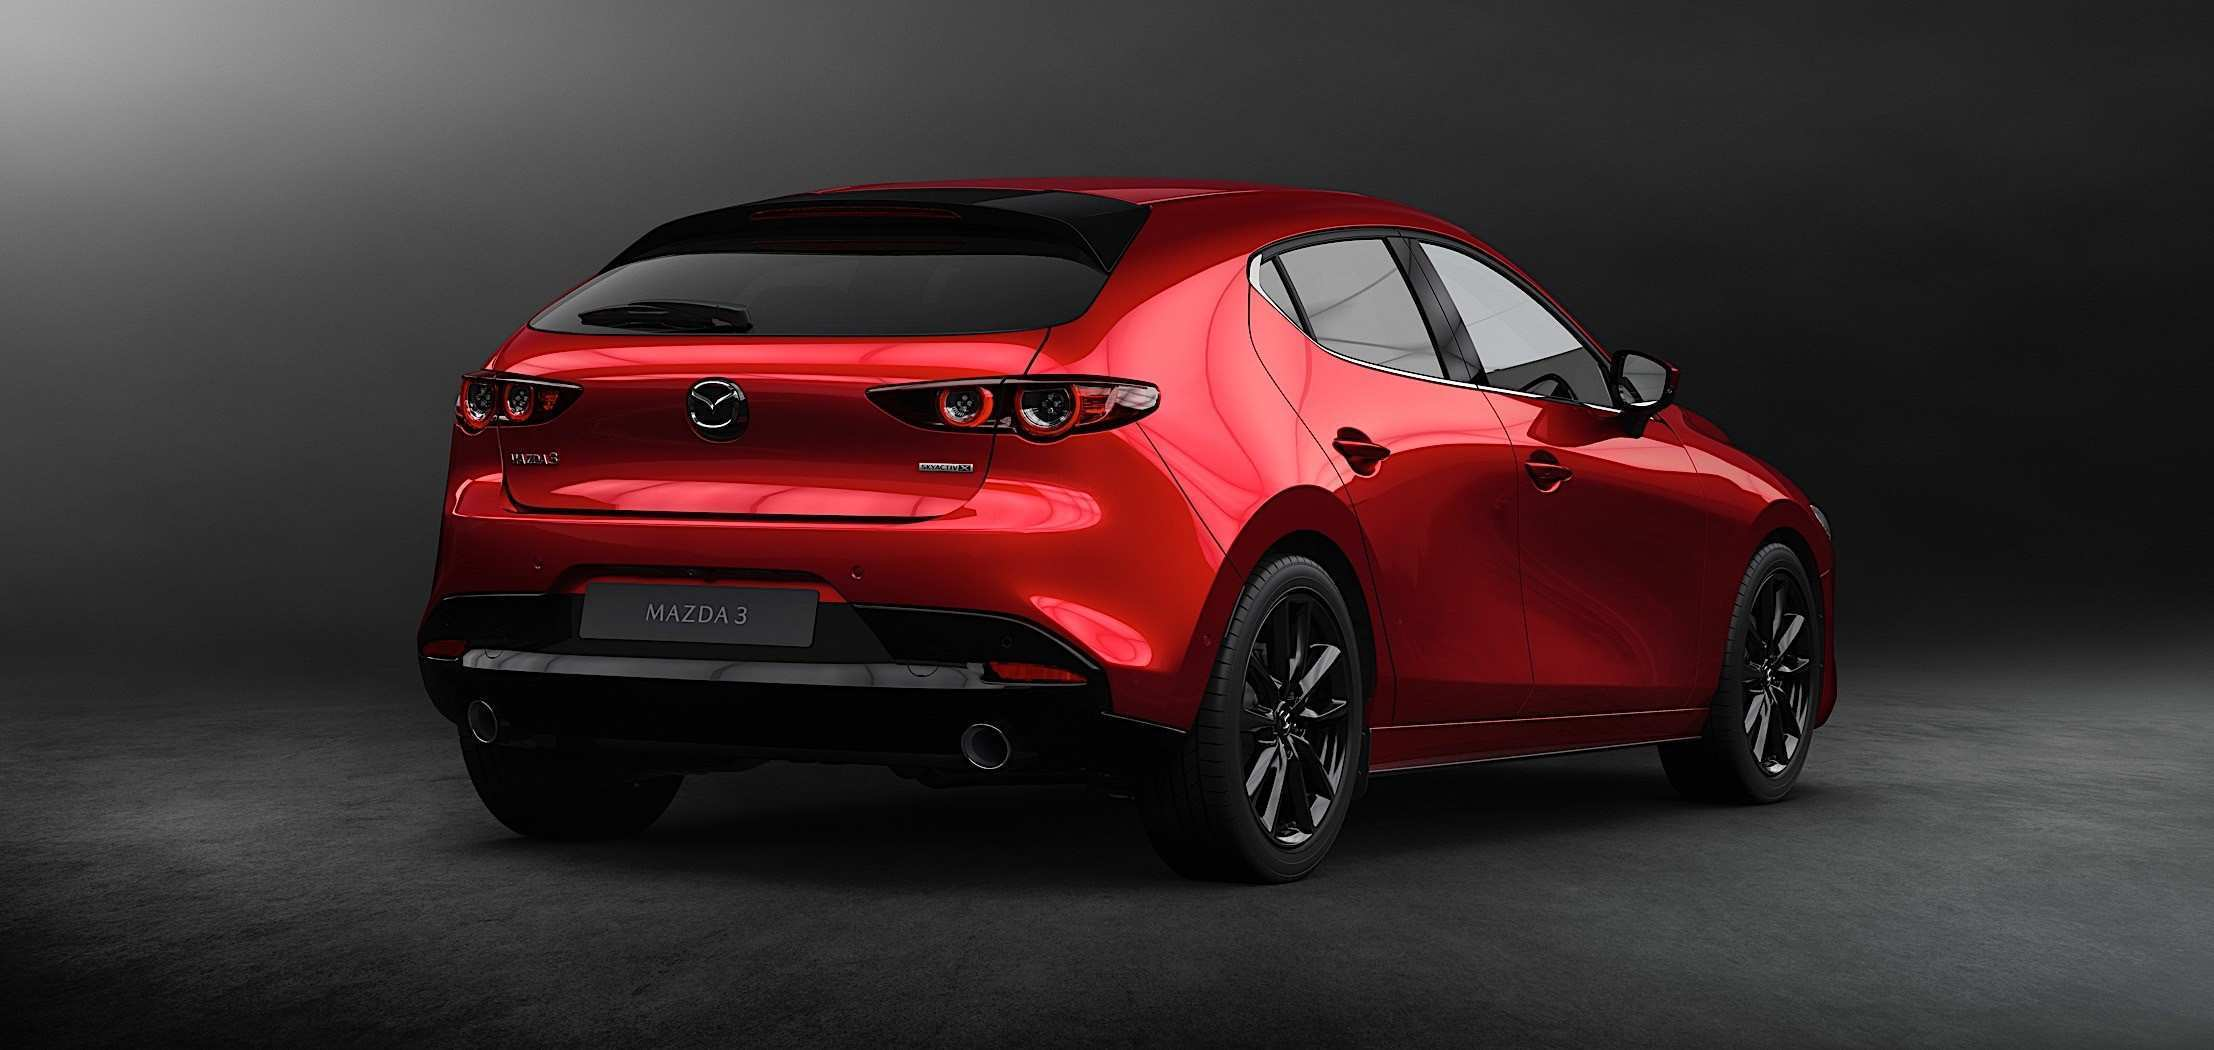 15 All New Mazda 3 2019 Specs Review